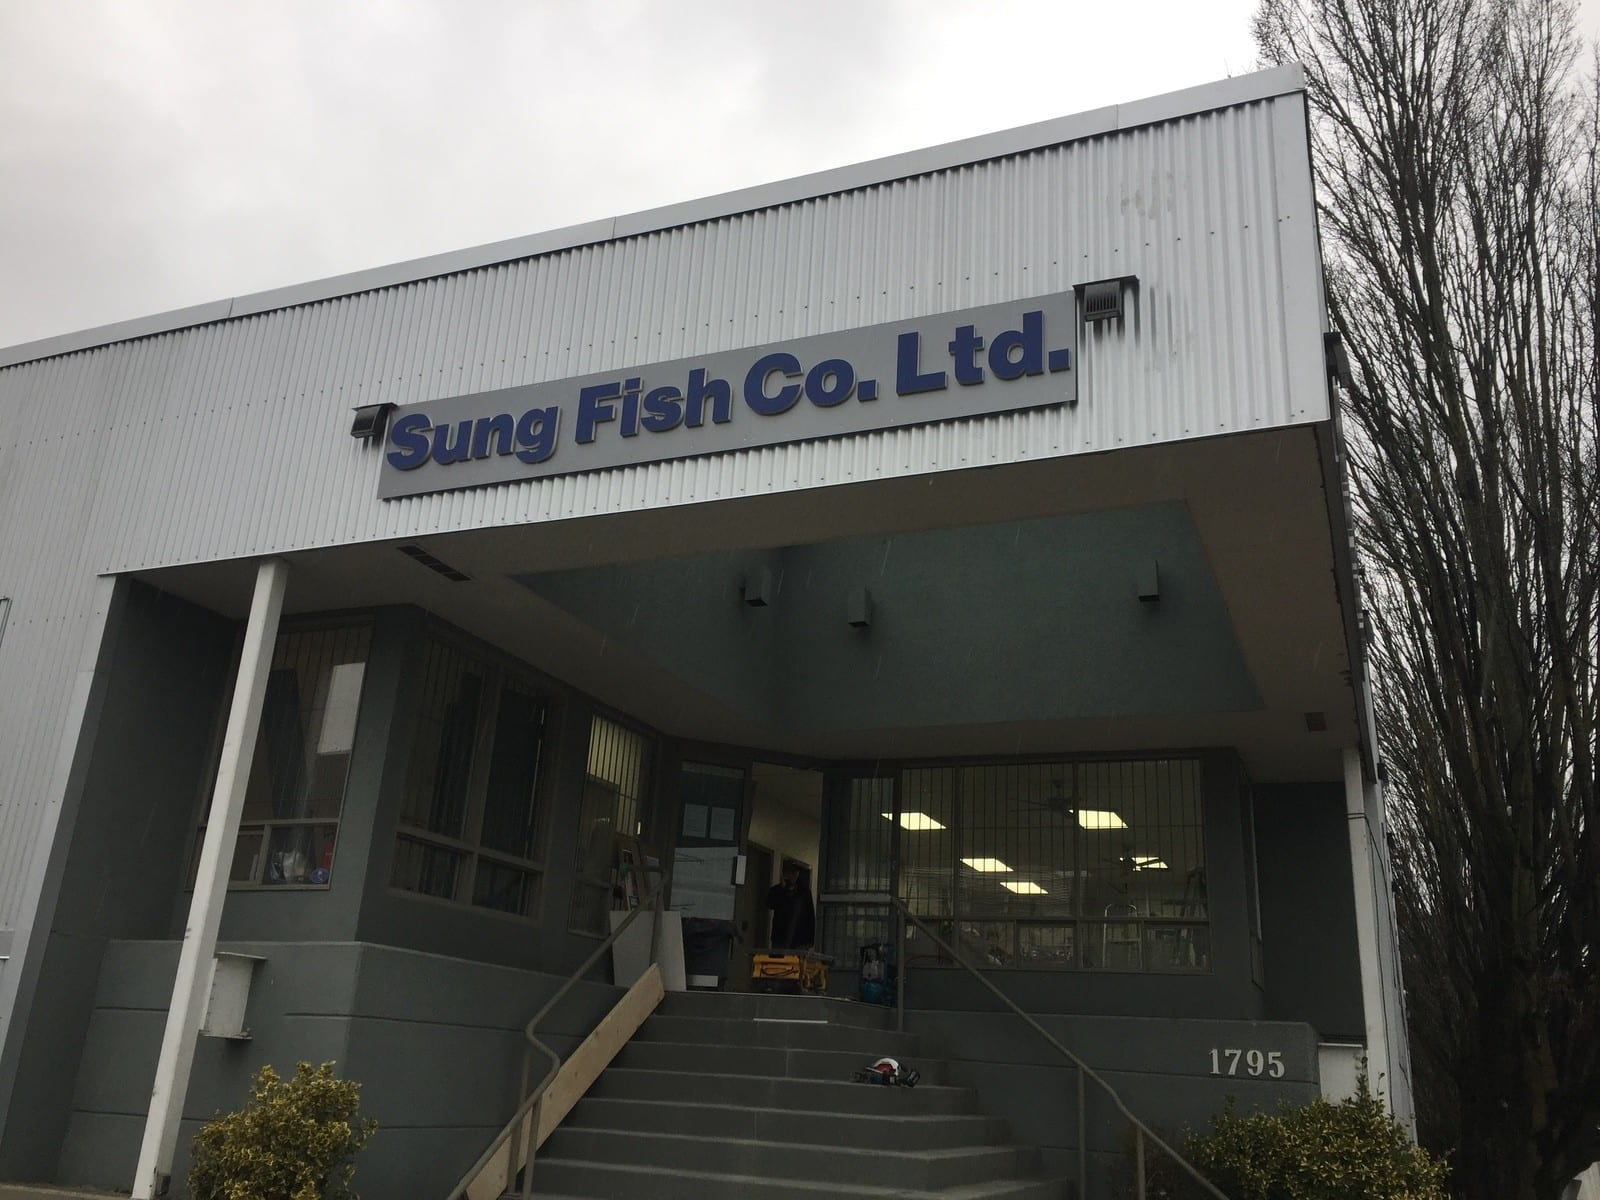 Corrugated Cladding on Commercial Building entrance